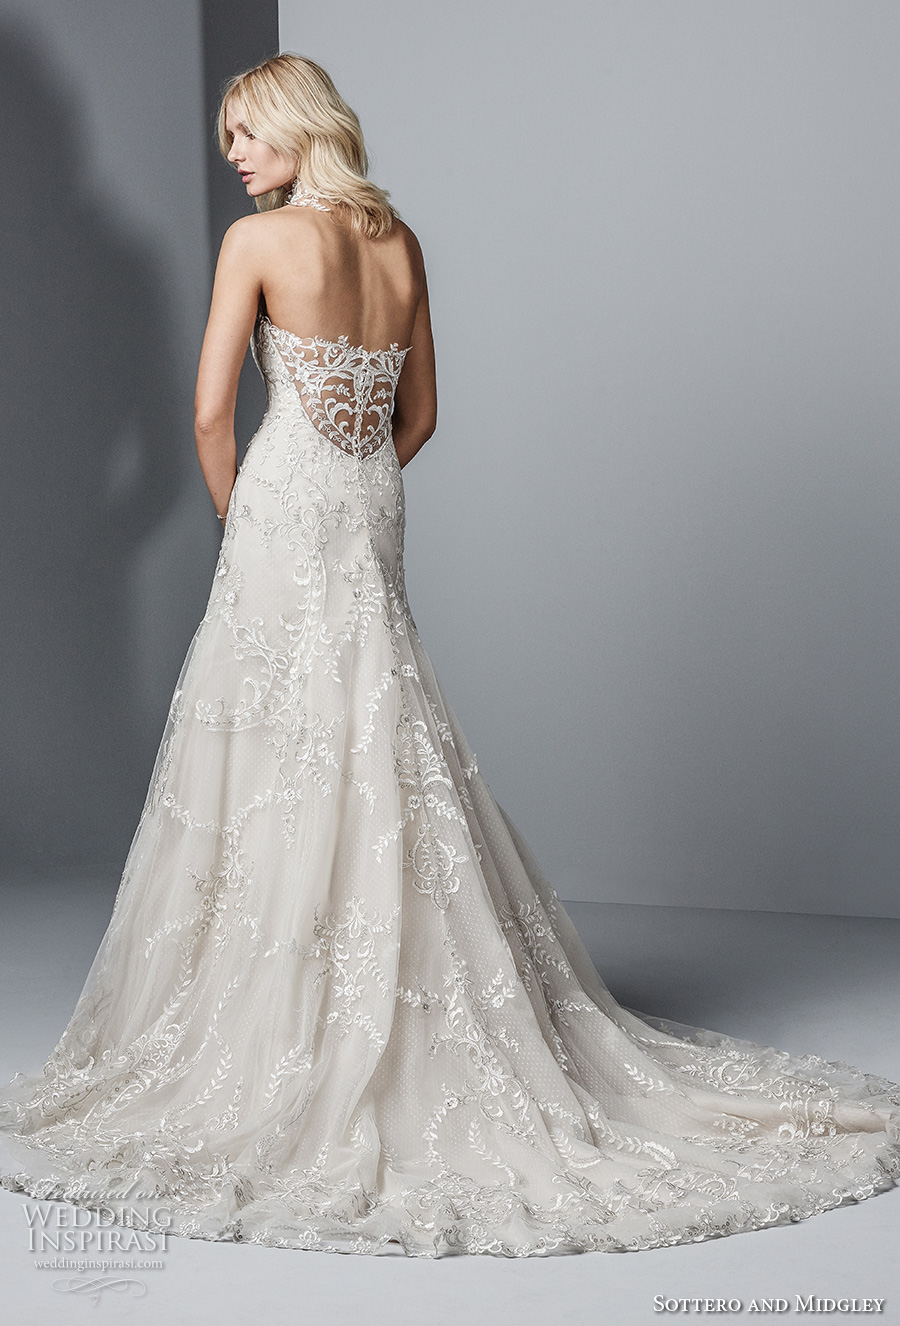 sottero midgley fall 2017 strapless sweetheart neckline full embellishment elegant a line wedding dress mid lace back medium train (601) bv